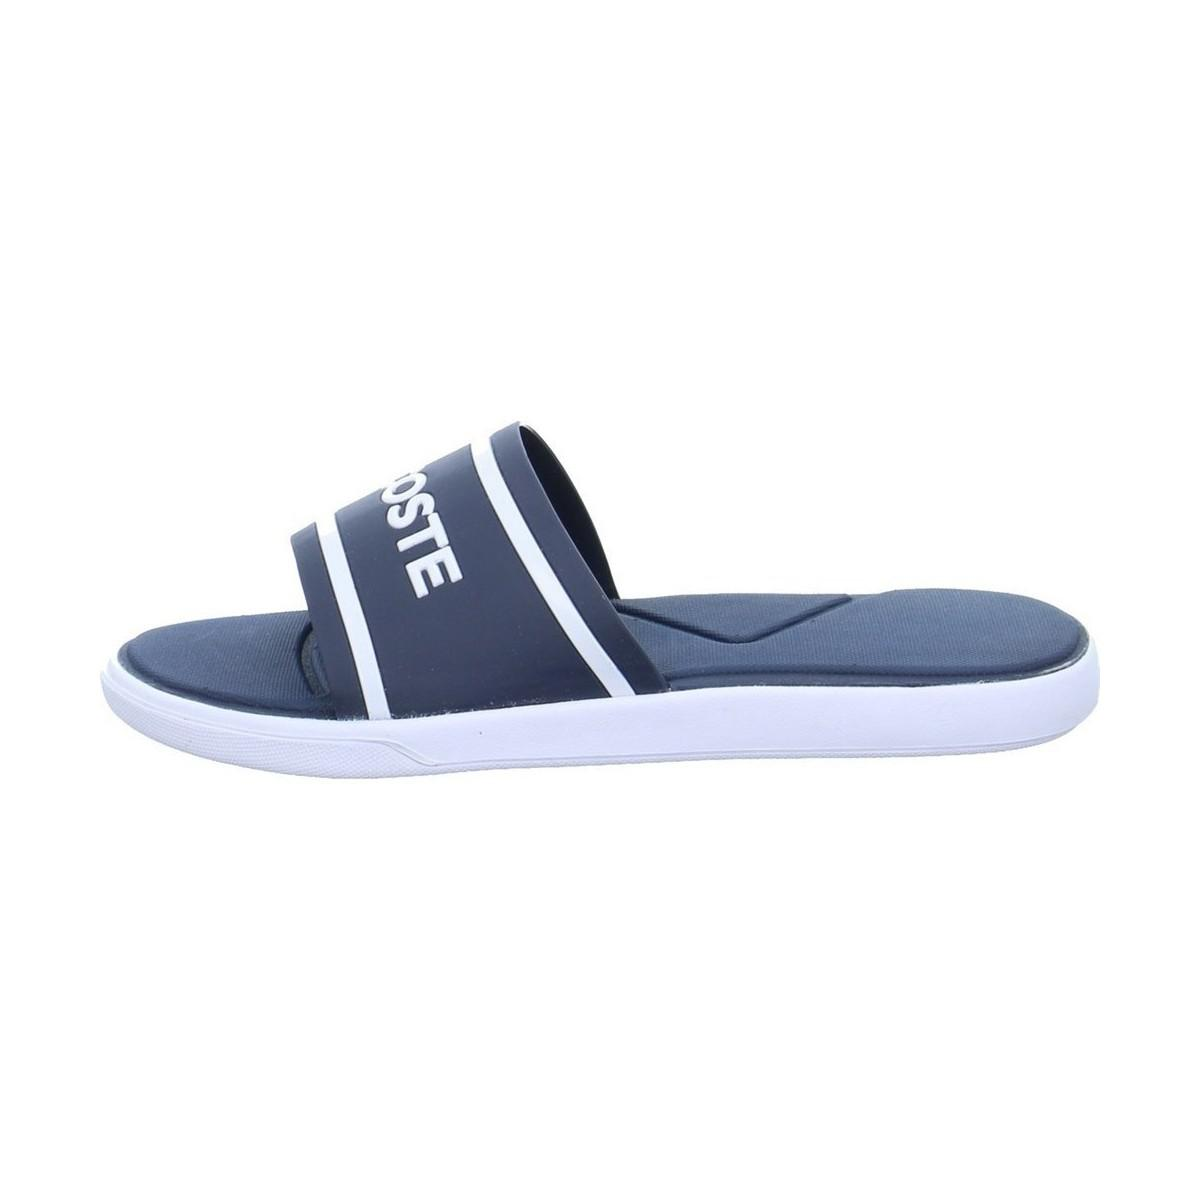 13d5d4484dc2 Lacoste L 30 Slide Men s Mules   Casual Shoes In Blue in Blue for ...